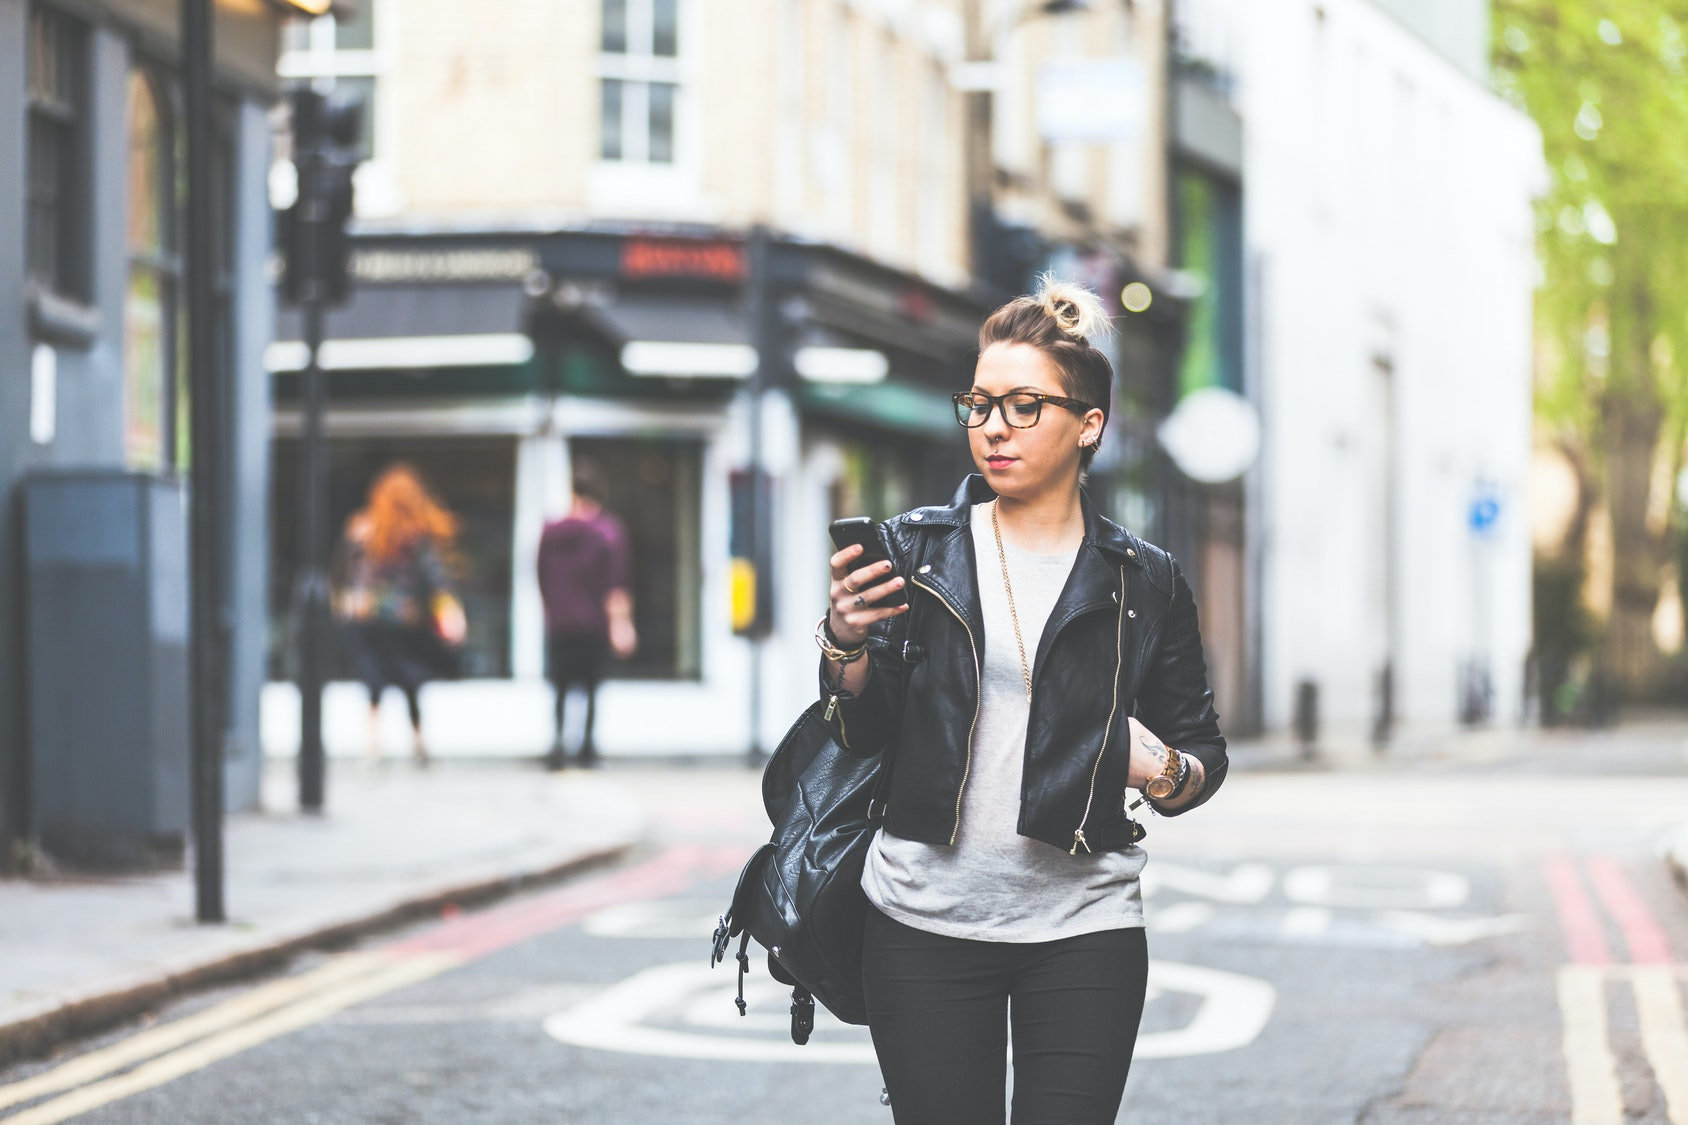 Where To Take A Girl In London